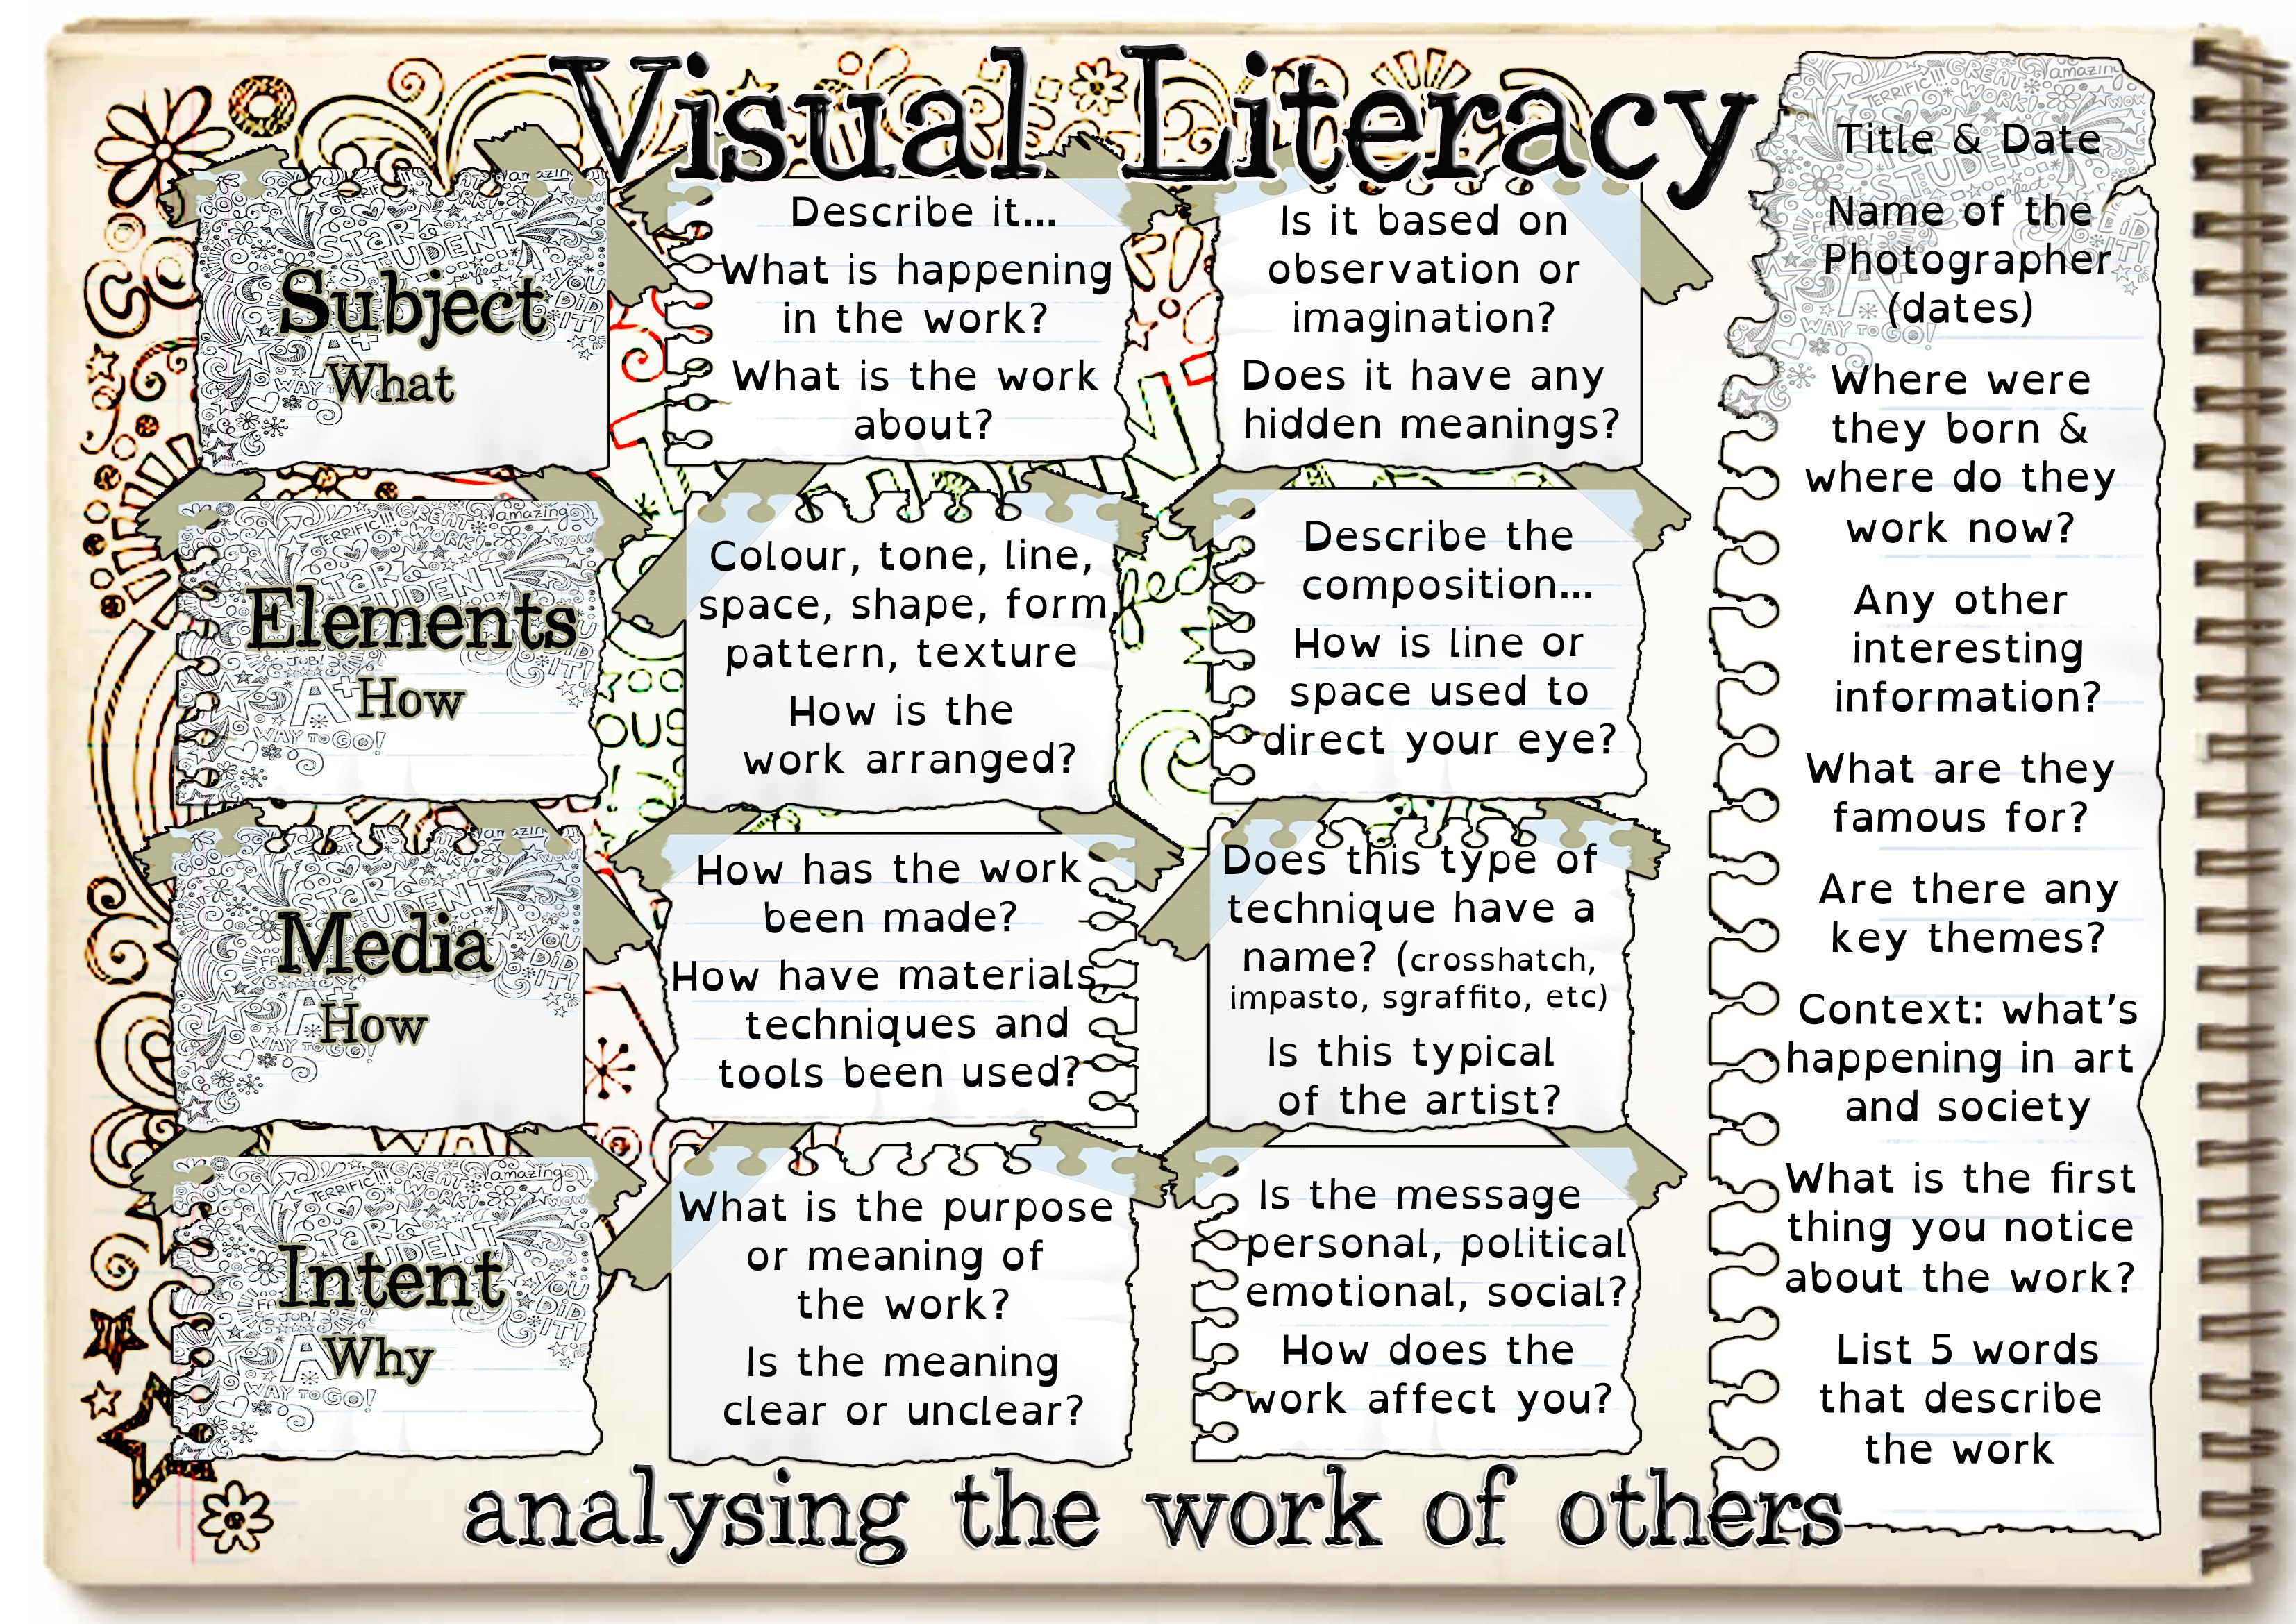 New And Updated Version Of The Visual Literacy Placemat By Lki Art Originally In Partnership